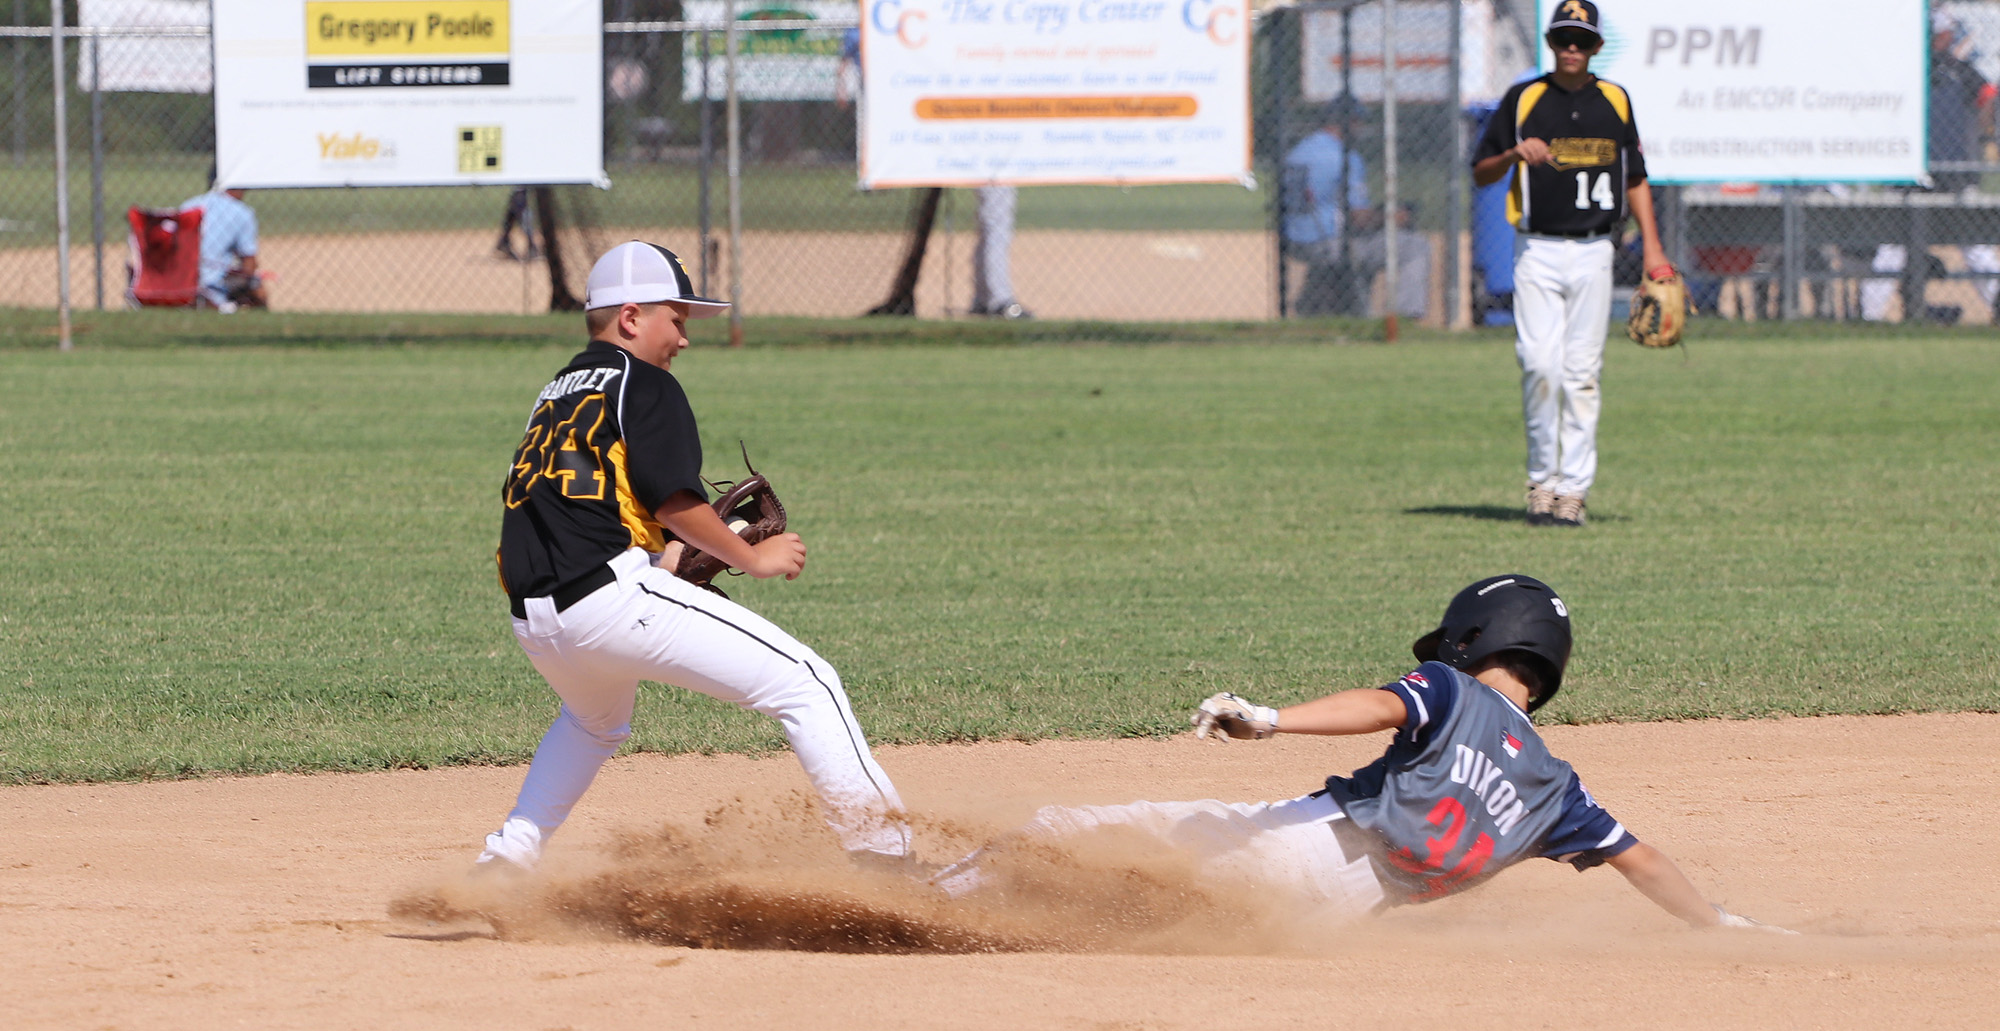 RRSpin - 12U All-star Jackets fall in semifinals while